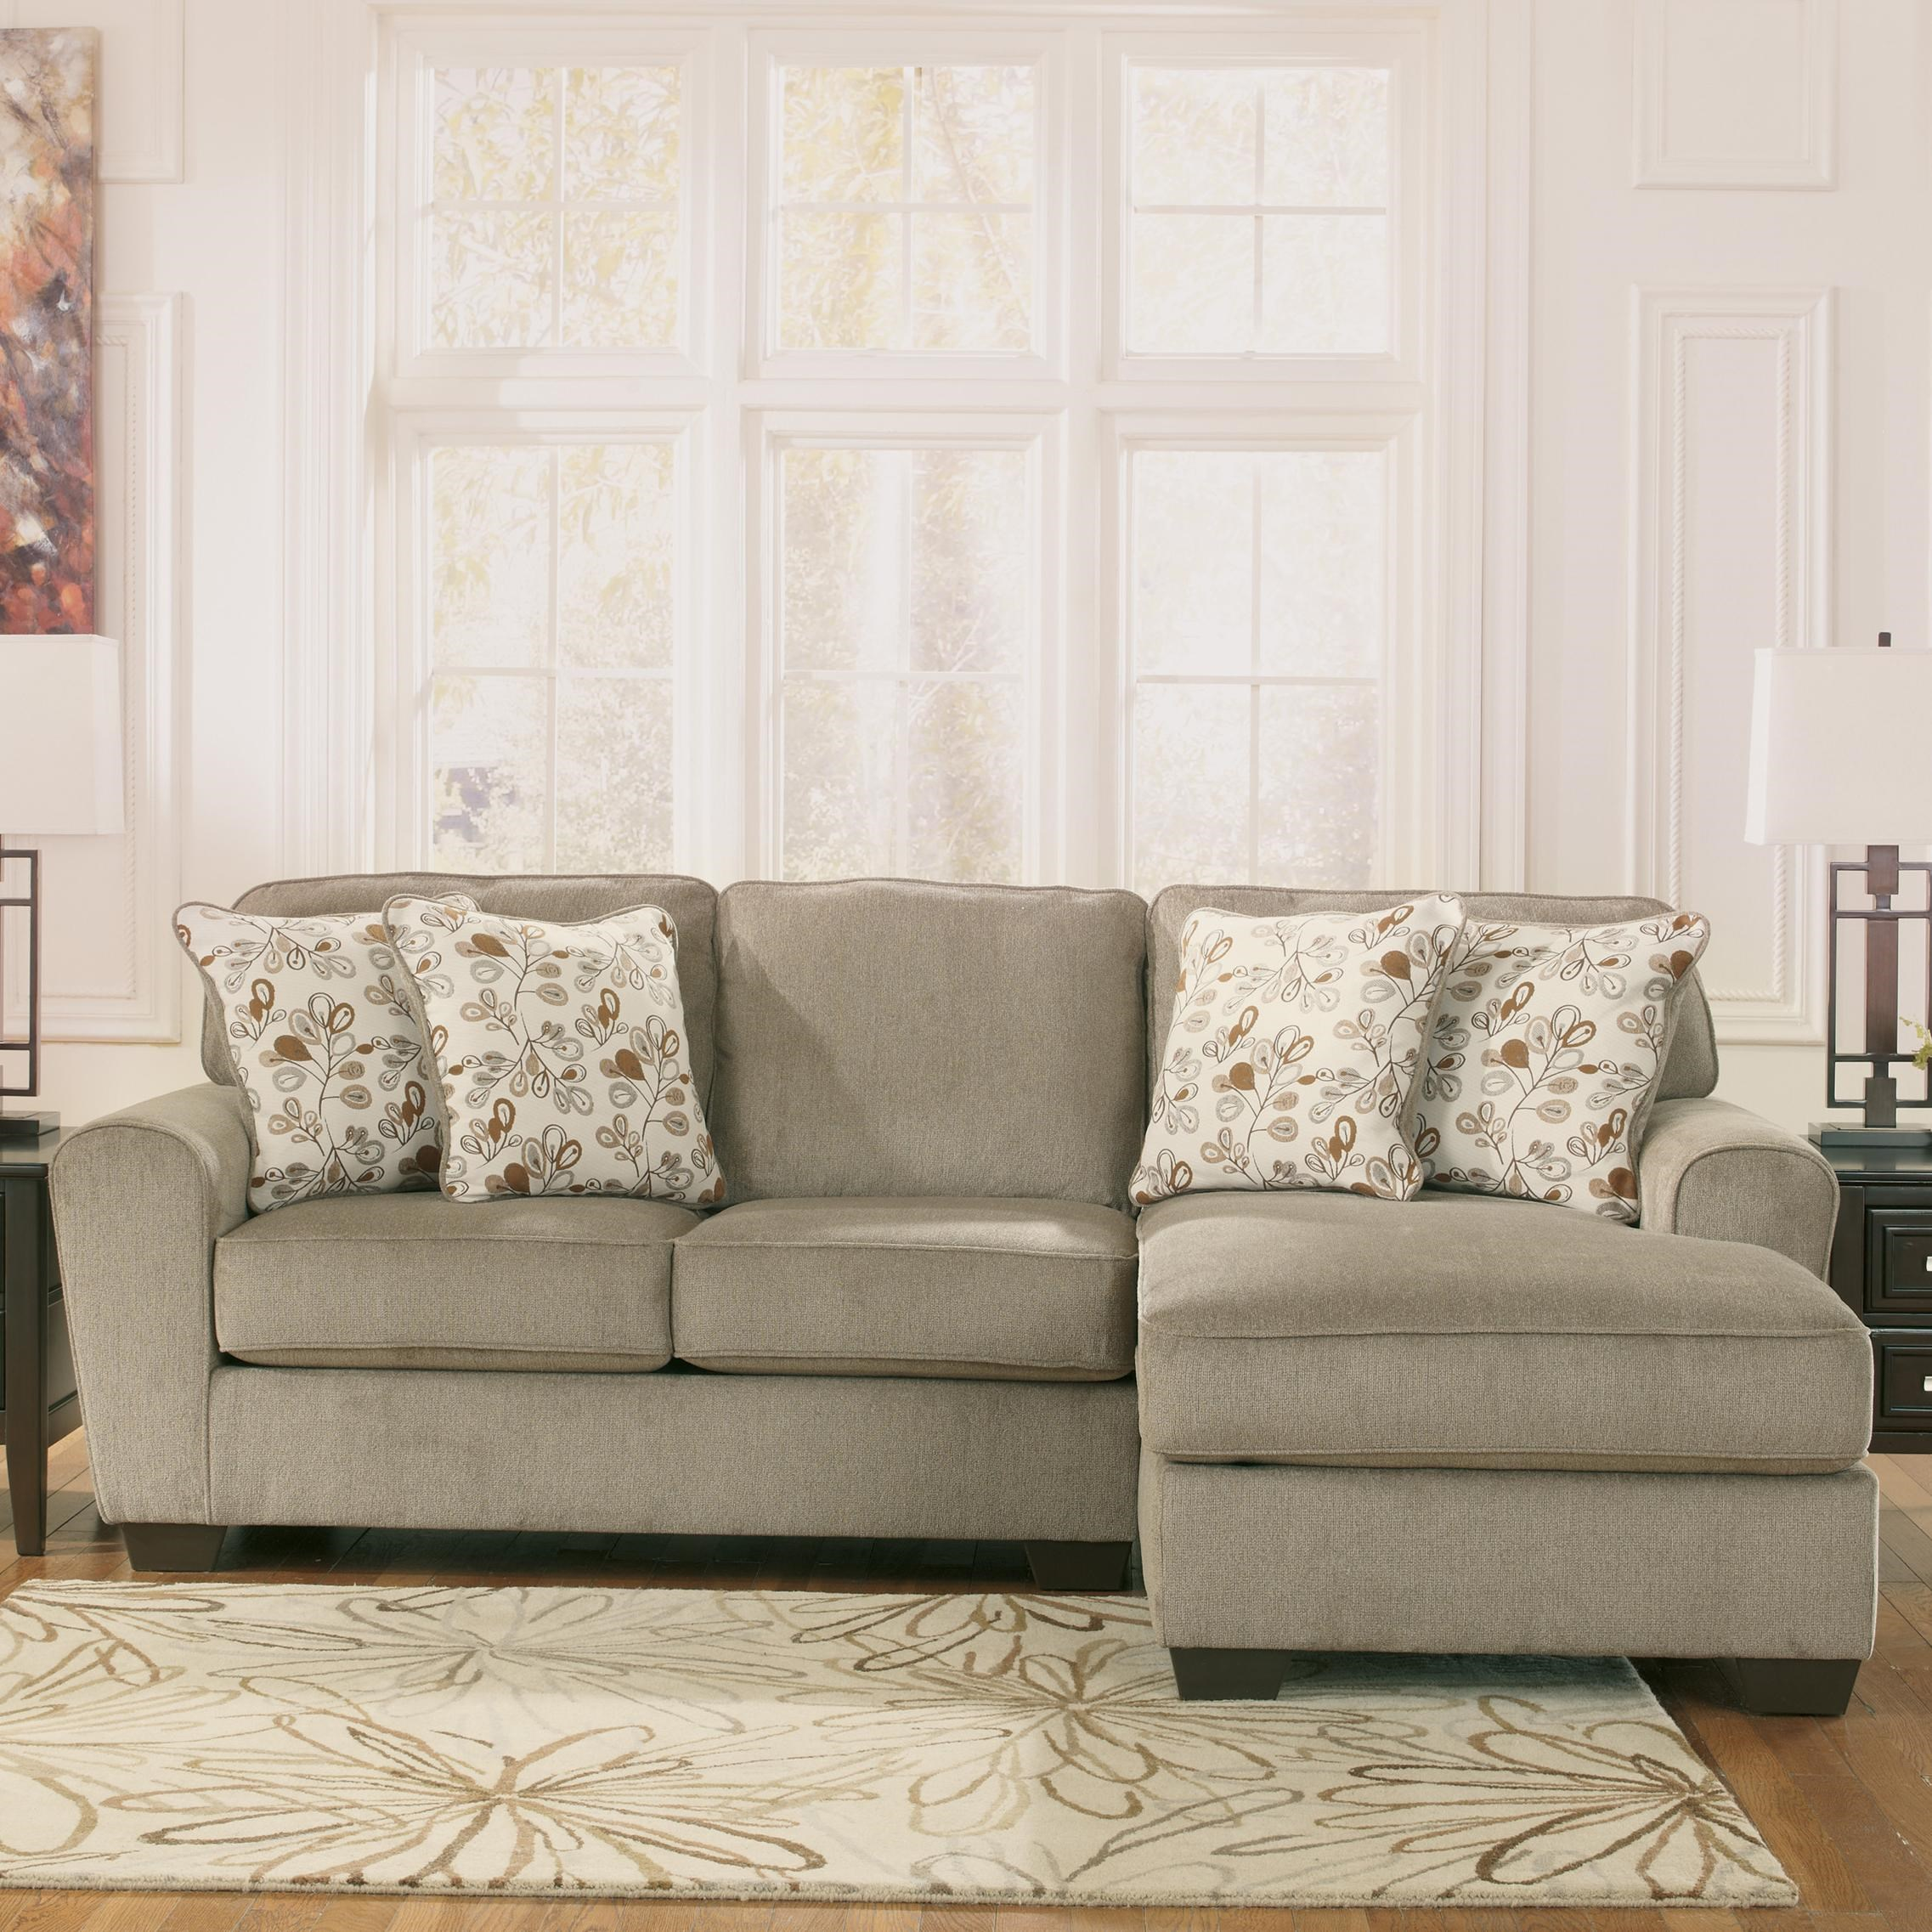 ashley furniture patola park patina 2piece sectional with right chaise john v schultz furniture sofa sectional - 2 Piece Sectional